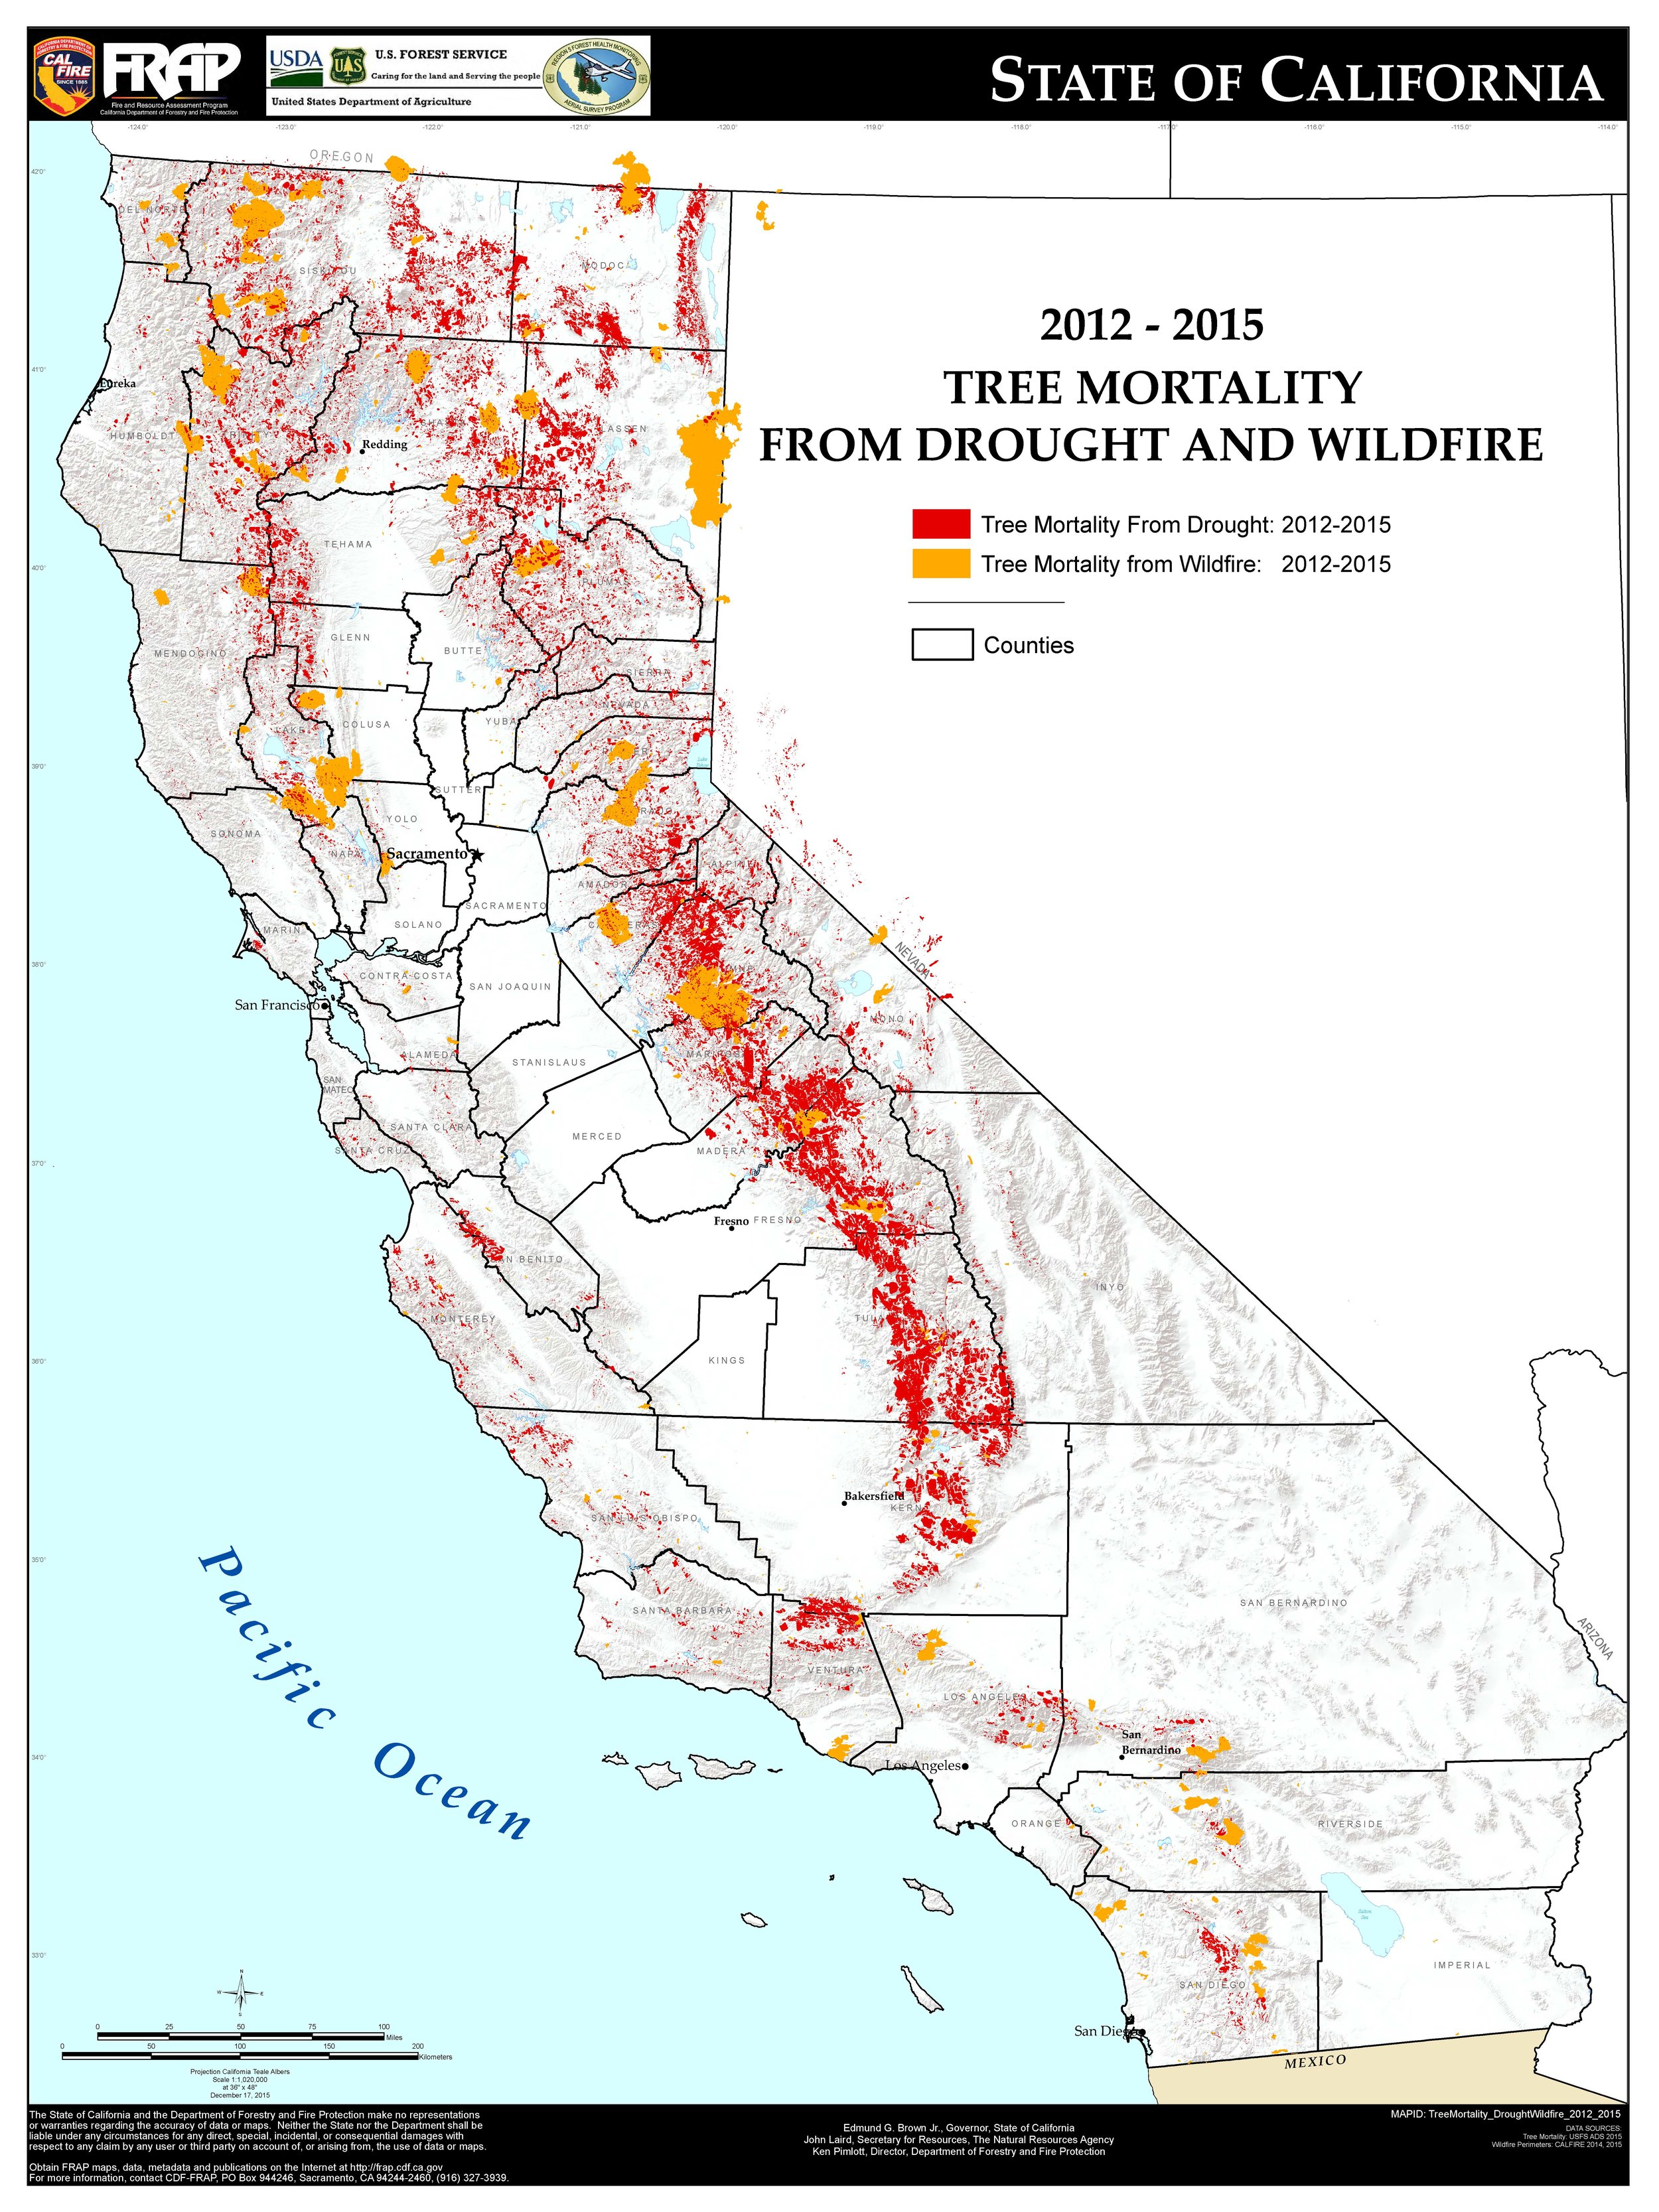 Figure 2. Tree Mortality from Drought and Wildfire. Source: California's Tree Mortality Task Force ( http://www.fire.ca.gov/treetaskforce/ )